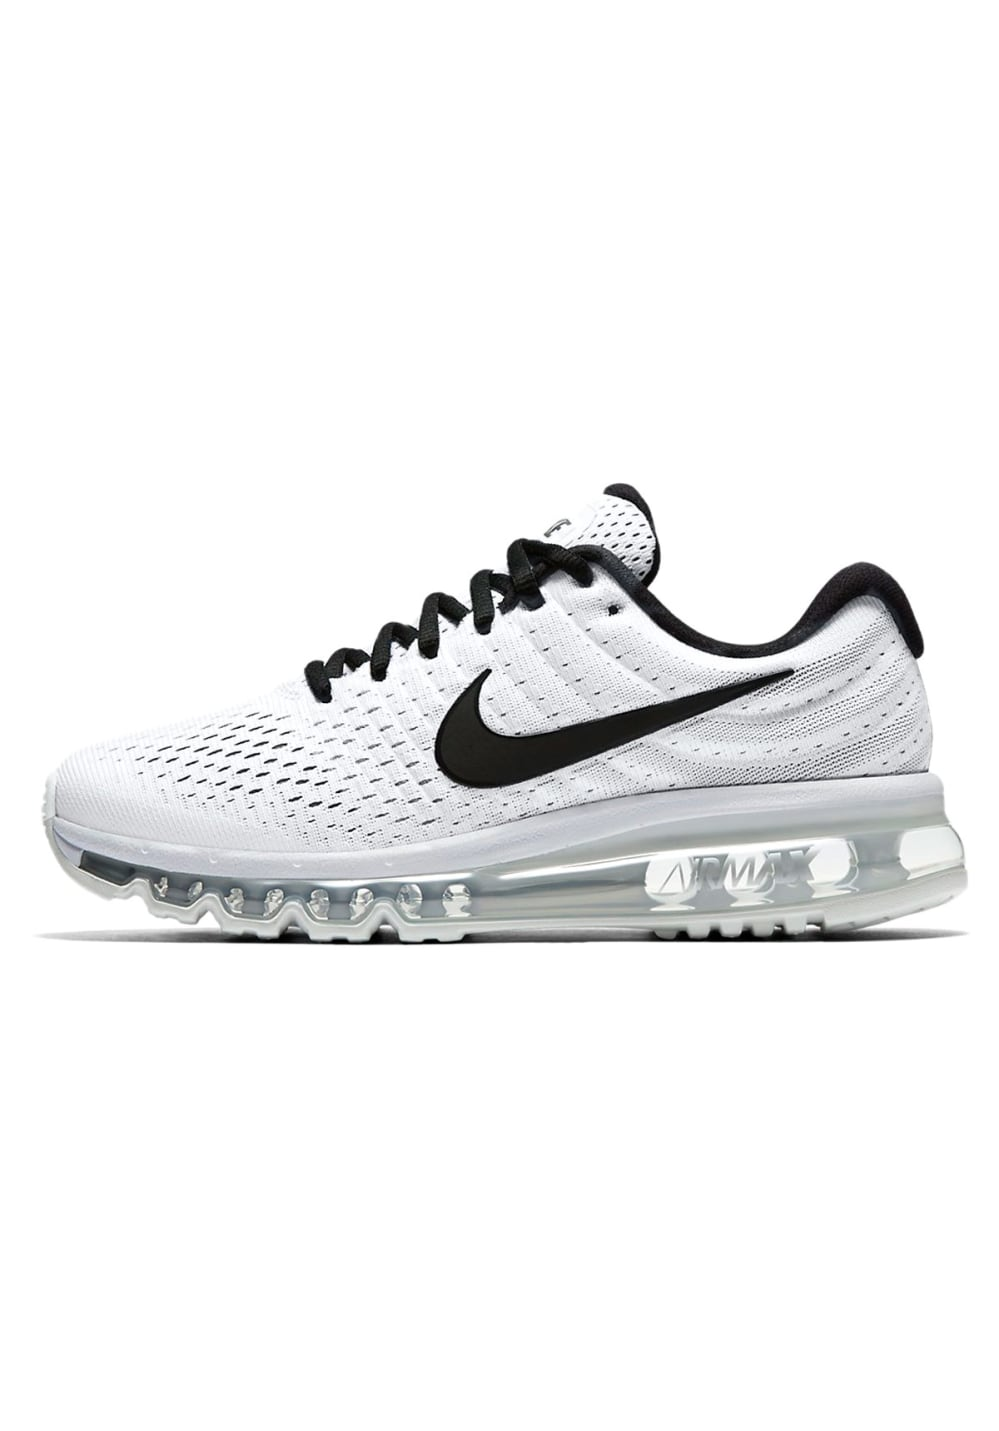 acheter populaire 00a41 45df7 Nike Air Max 2017 - Running shoes for Women - Grey